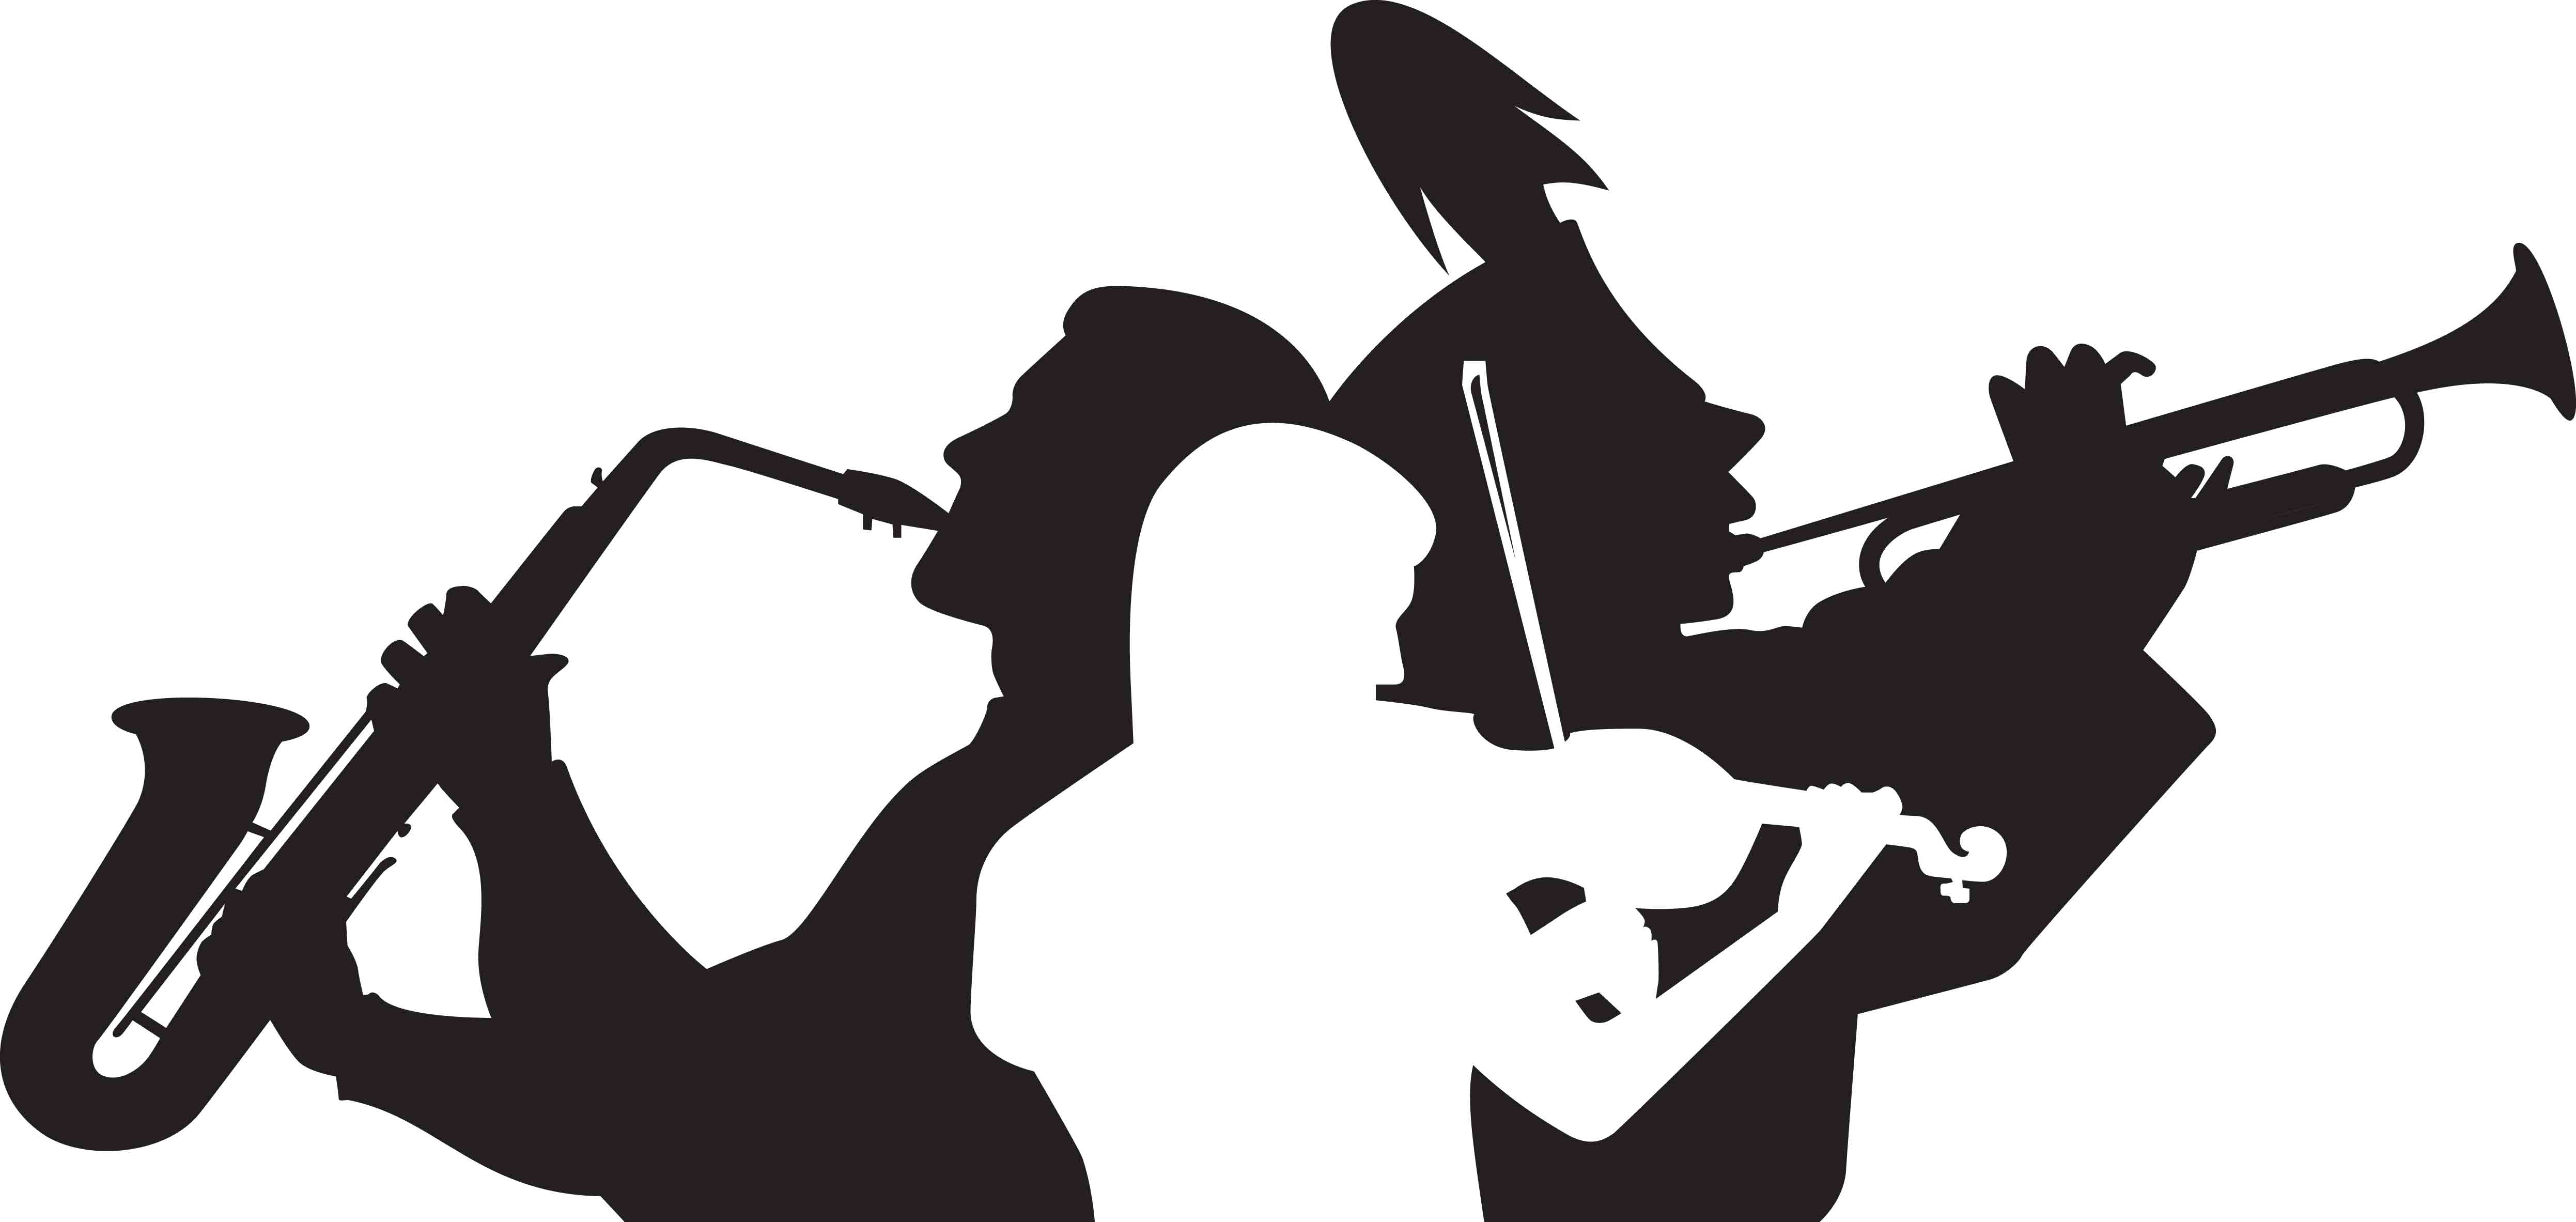 Orchestra clipart. Awesome collection digital o